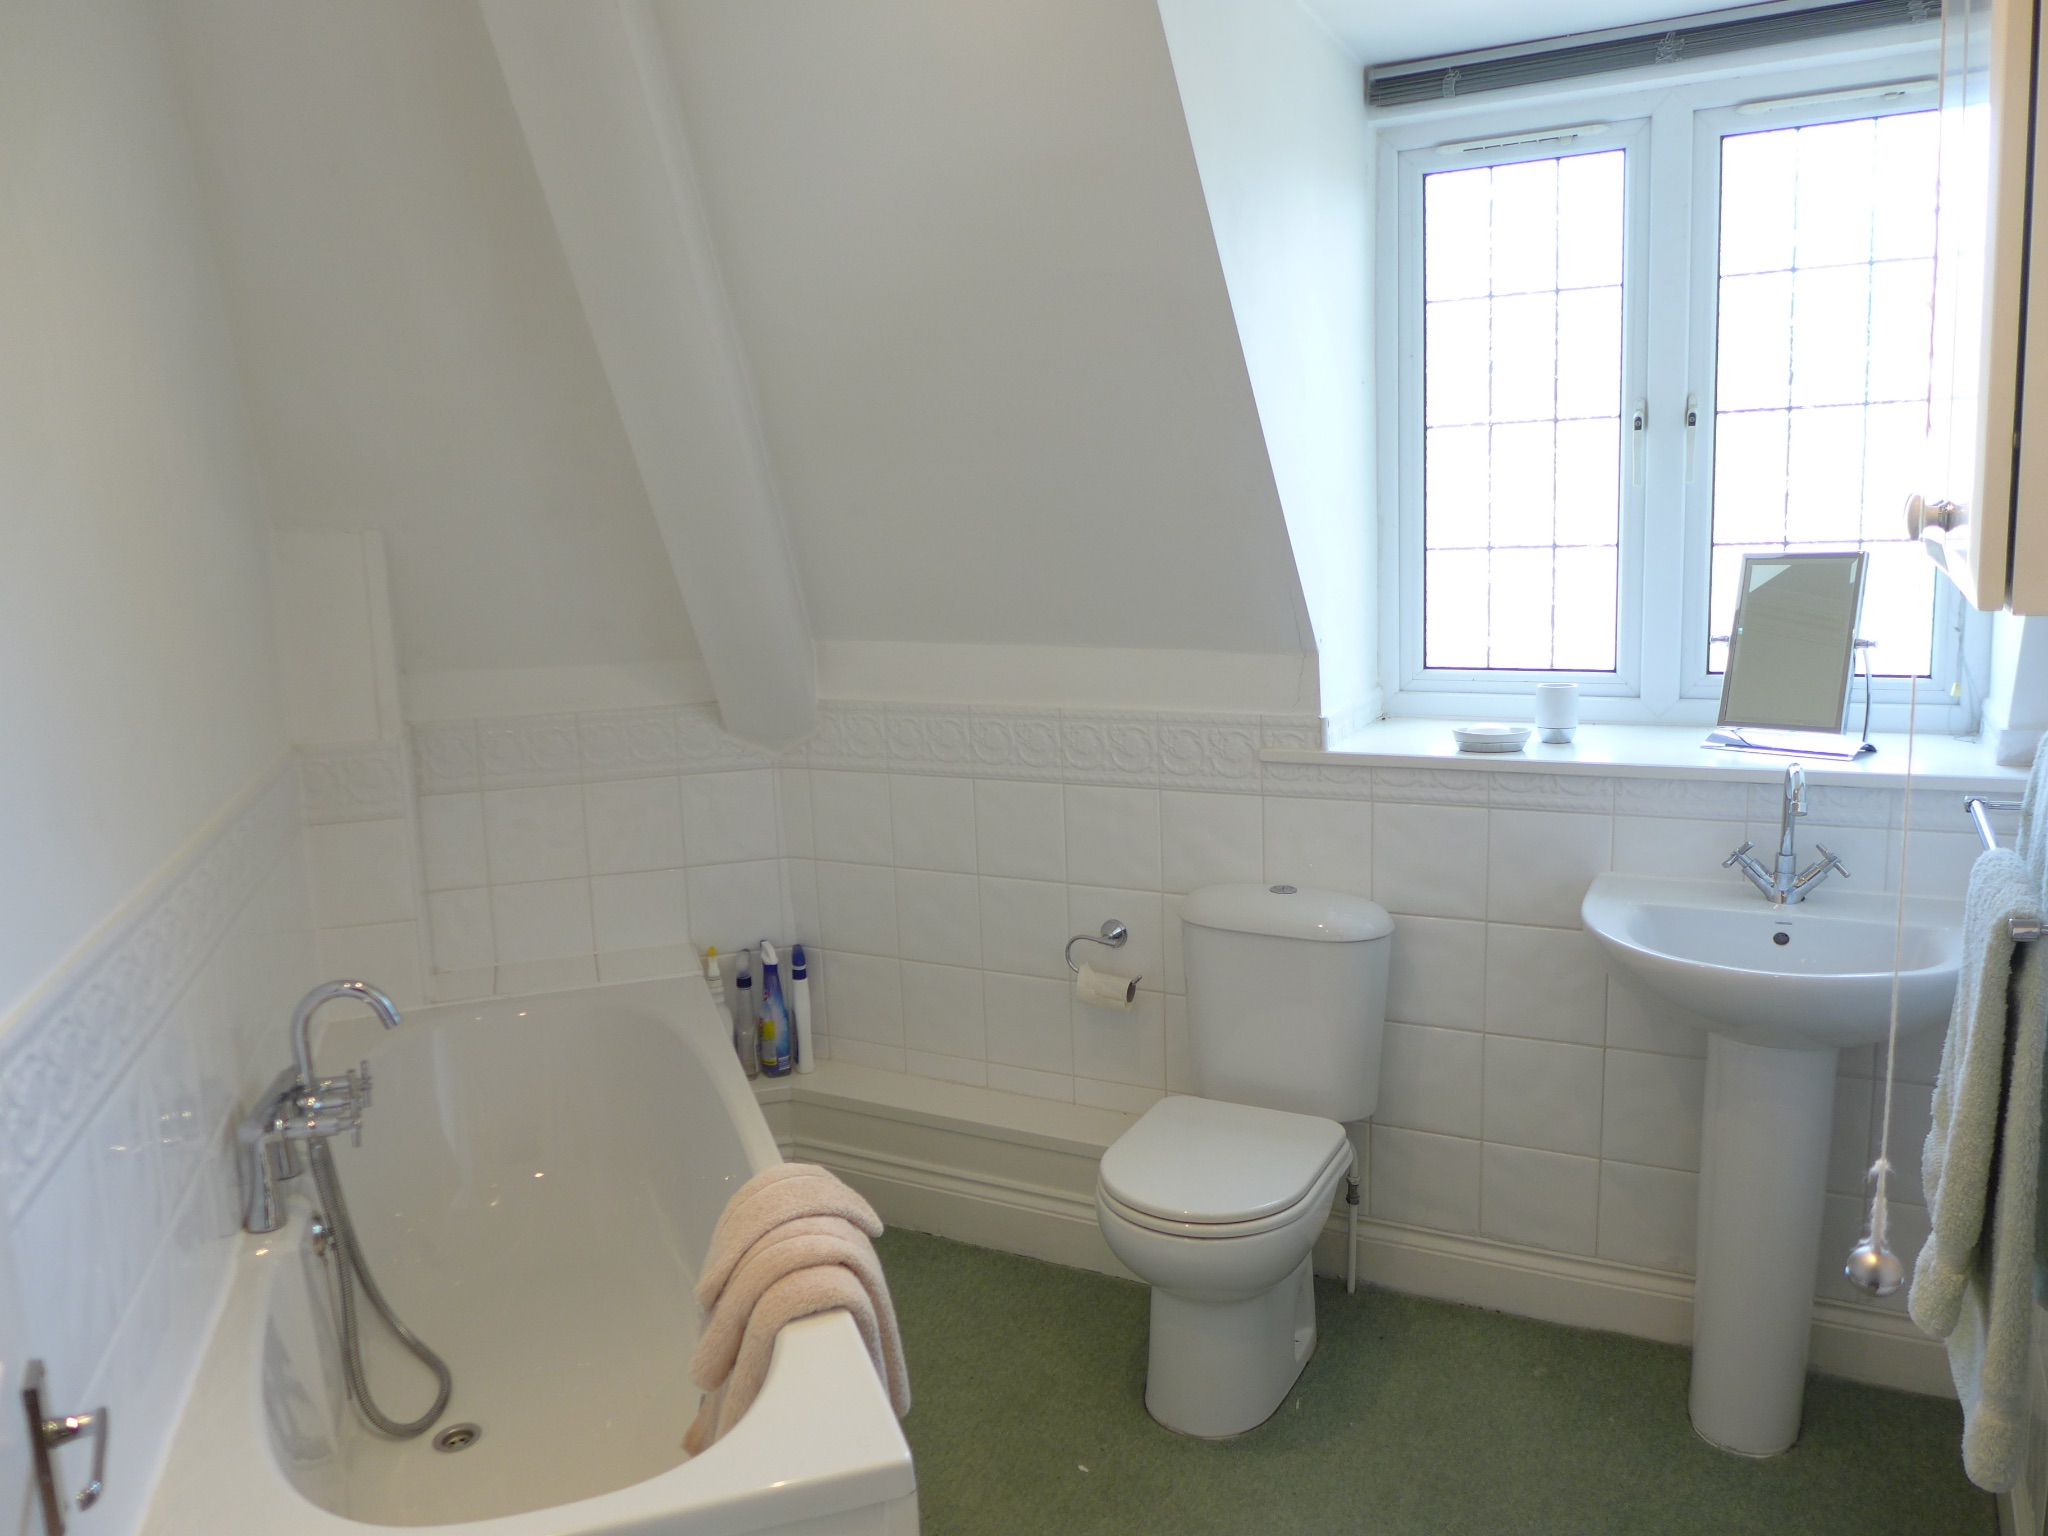 3 bedroom detached house For Sale in Todmorden - Photograph 17.